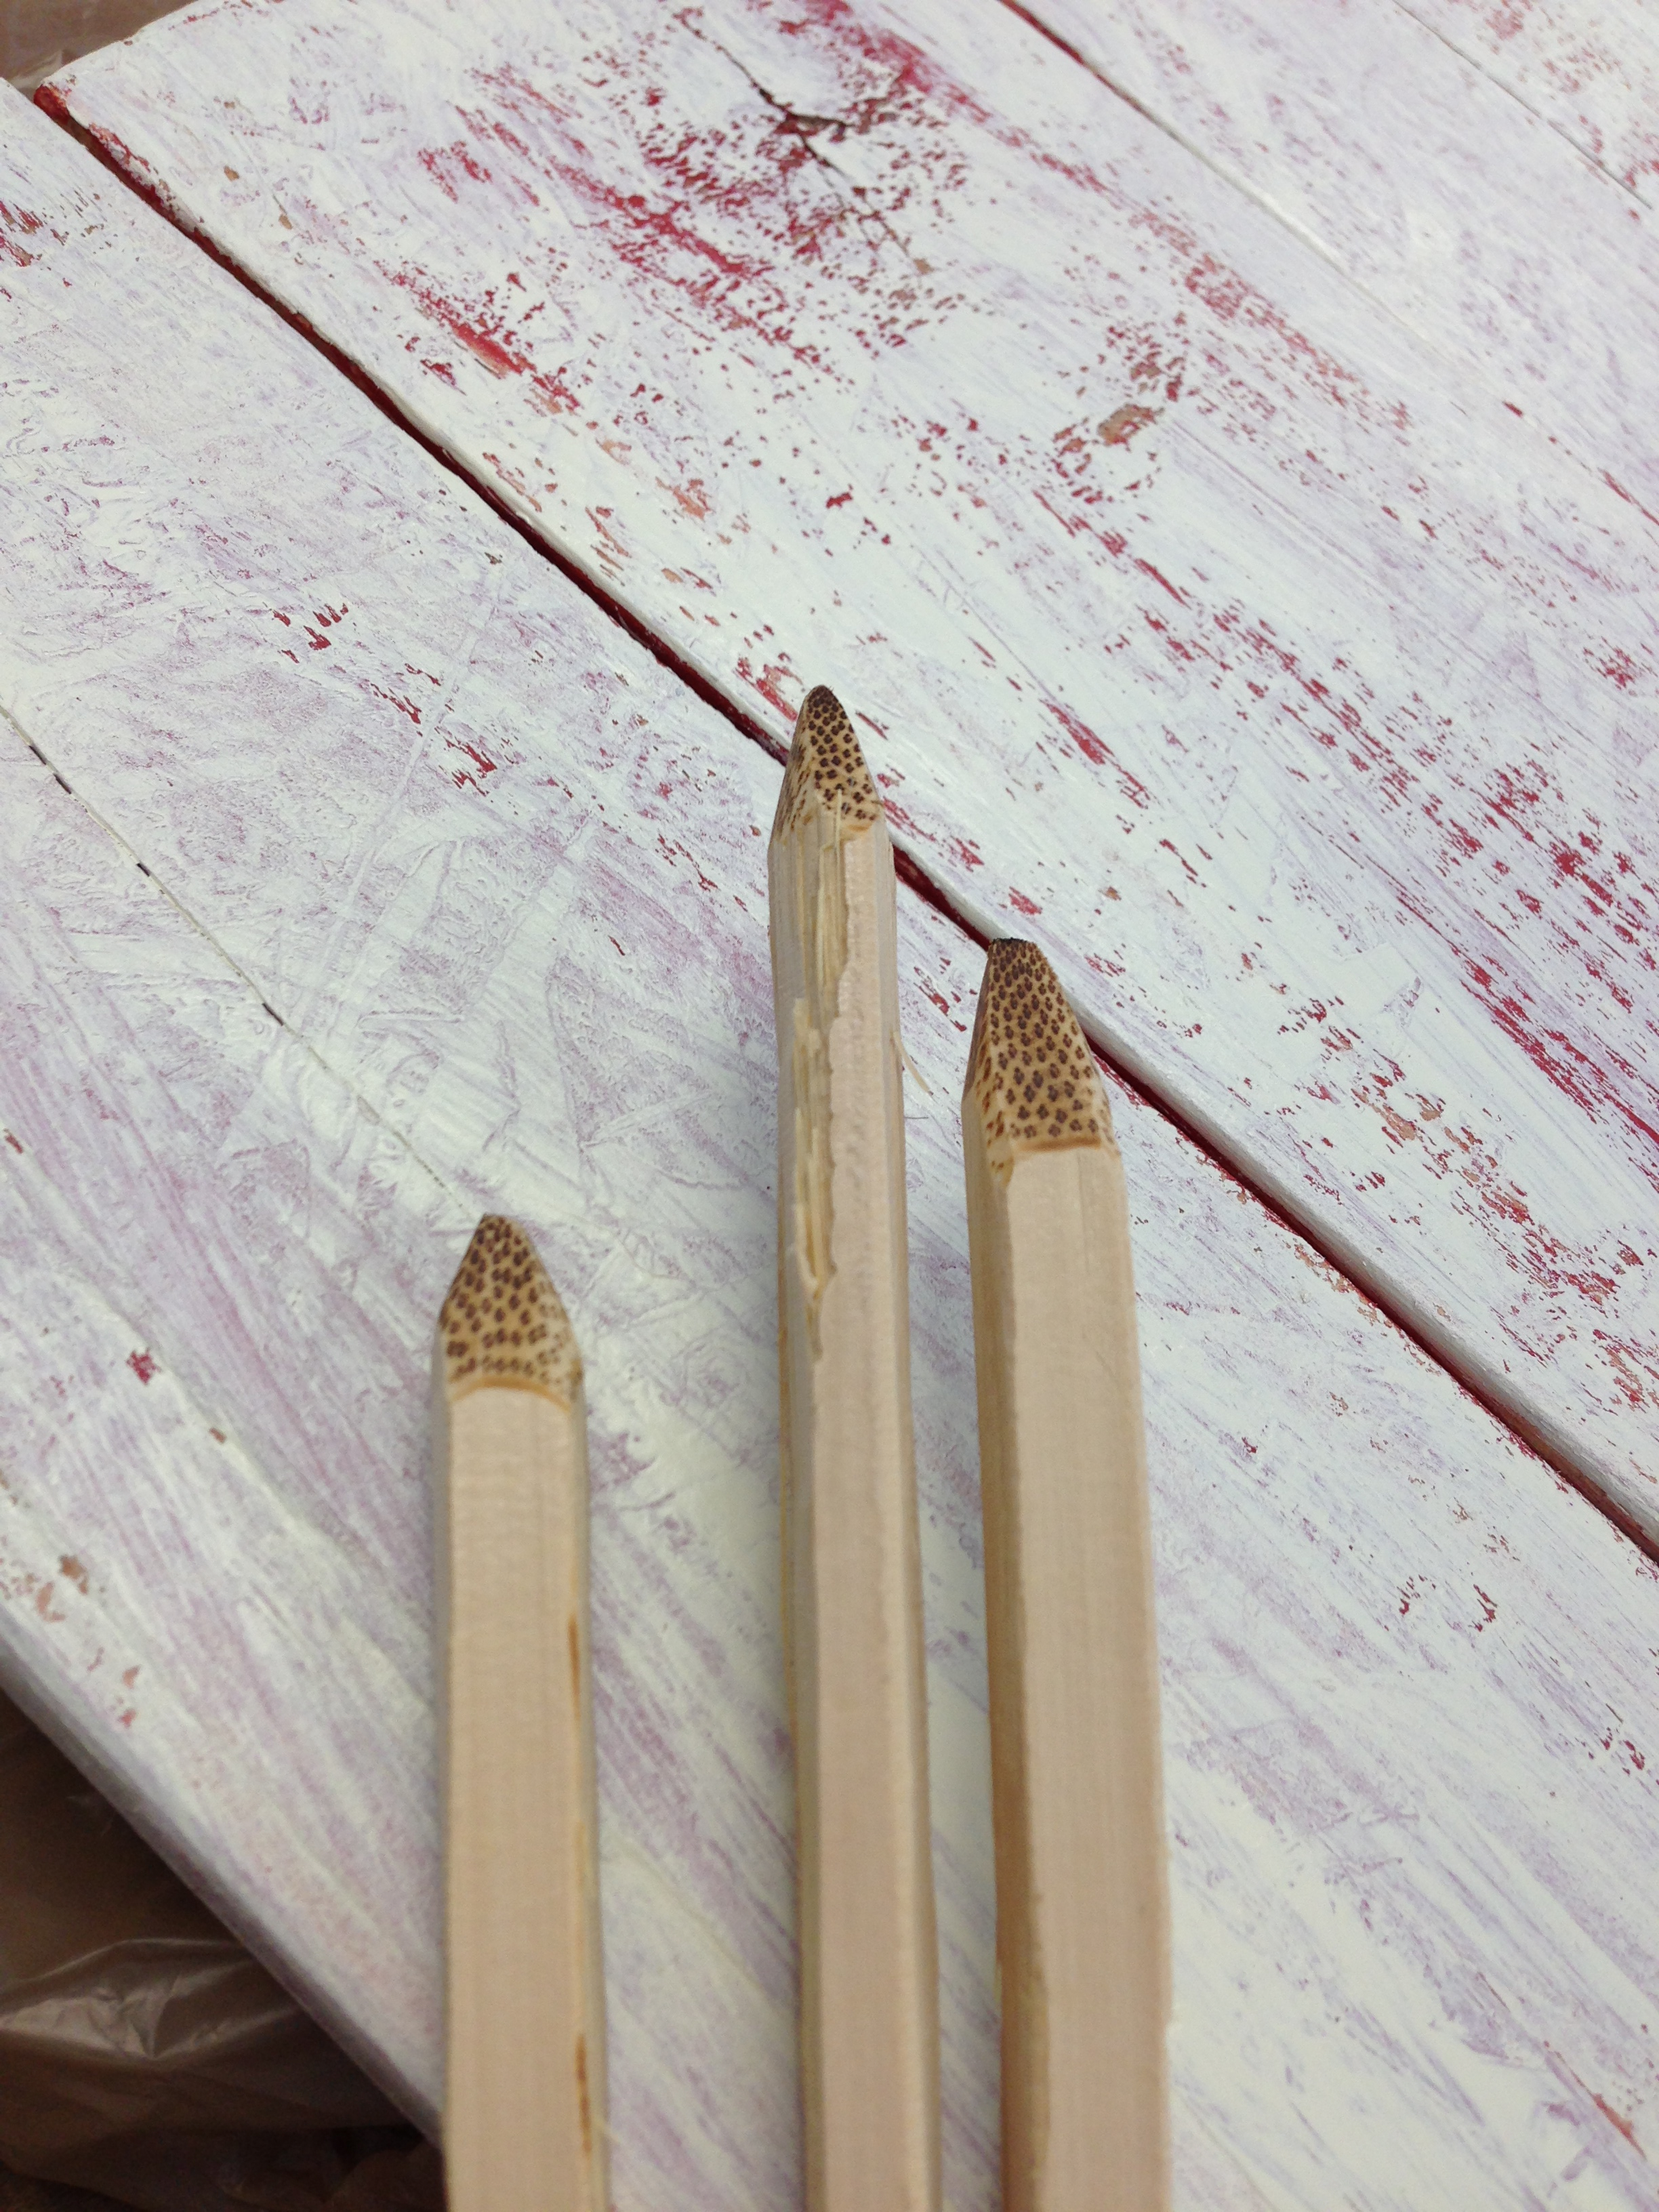 The tips of freshly-made potting chopsticks.